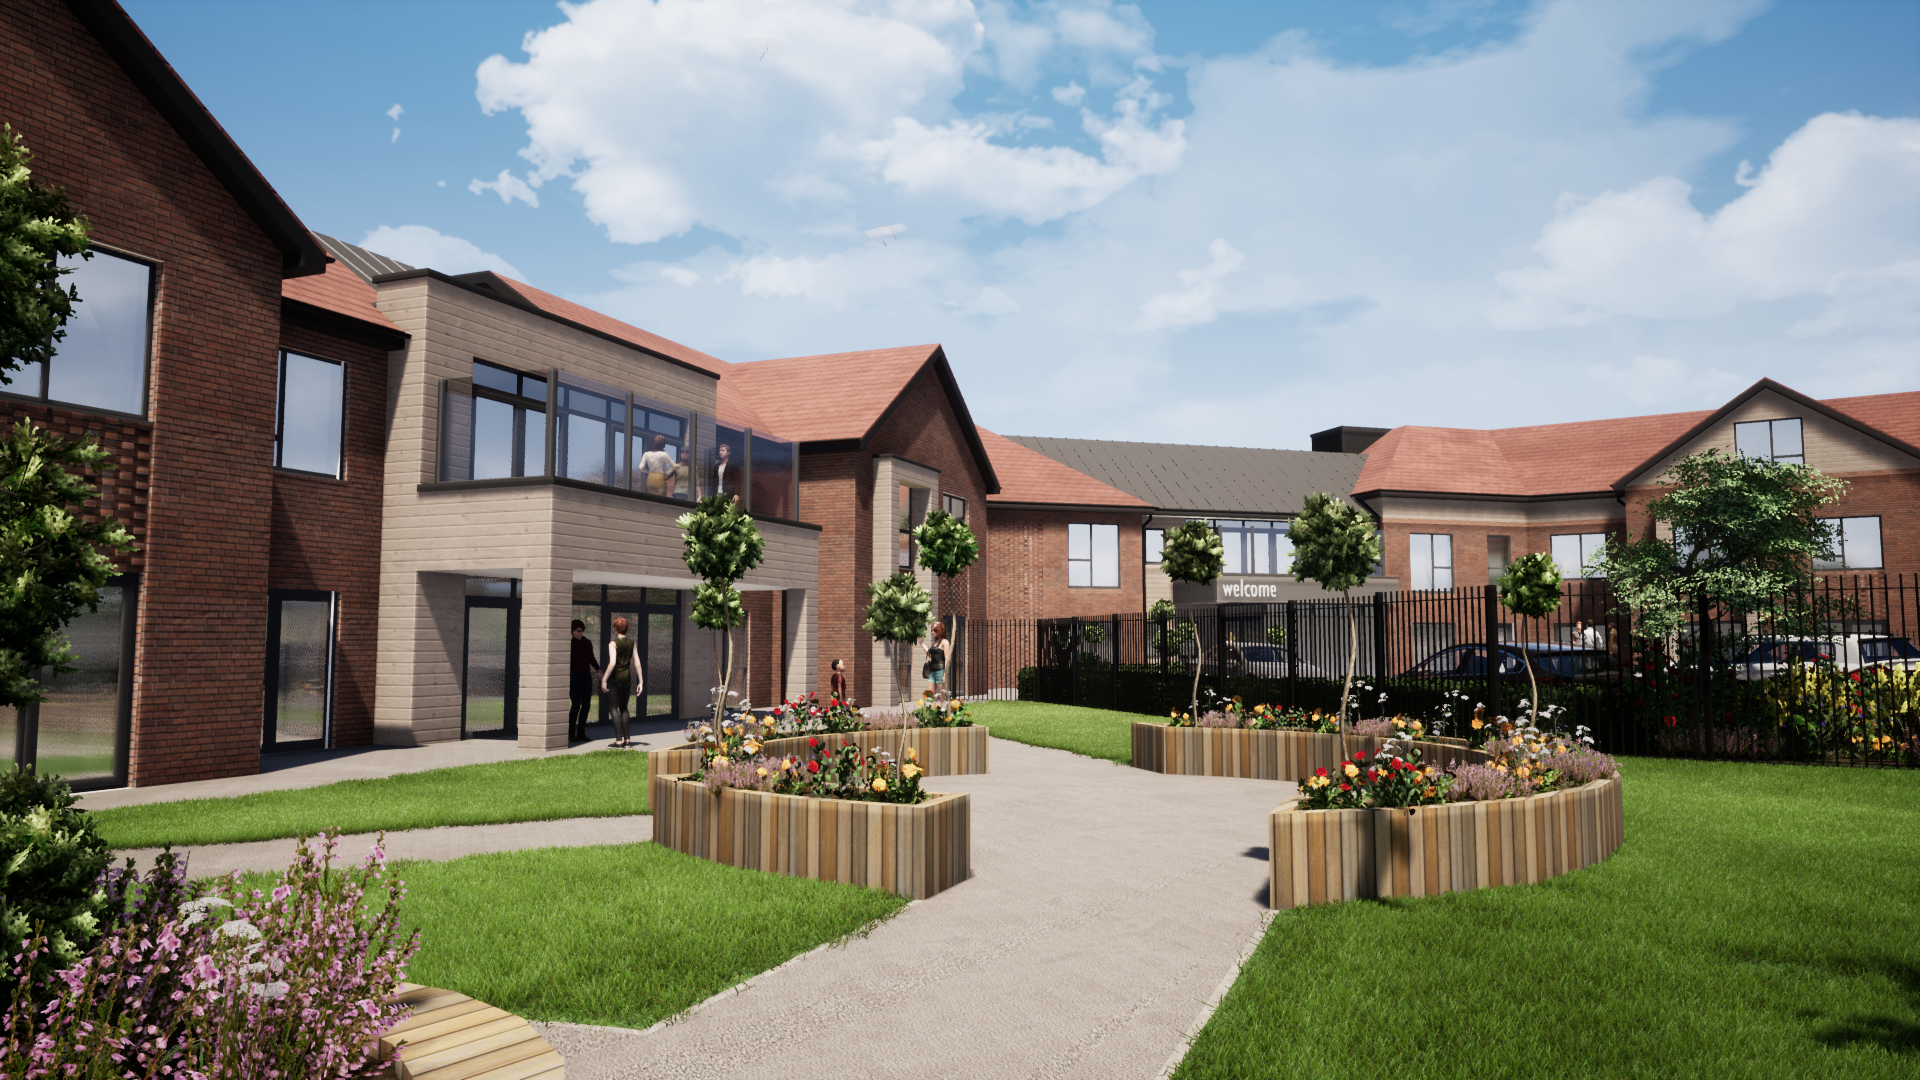 A new 72-bedded care home in Crewe, Cheshire